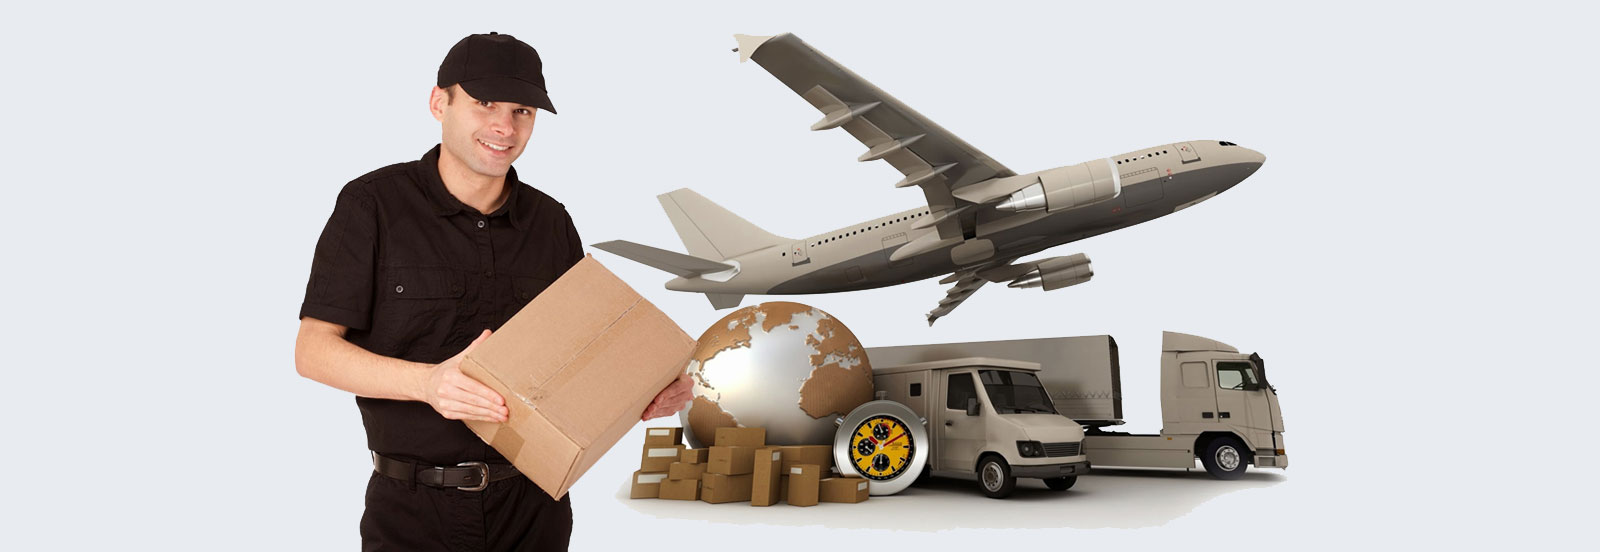 International Air Freight Forwarder